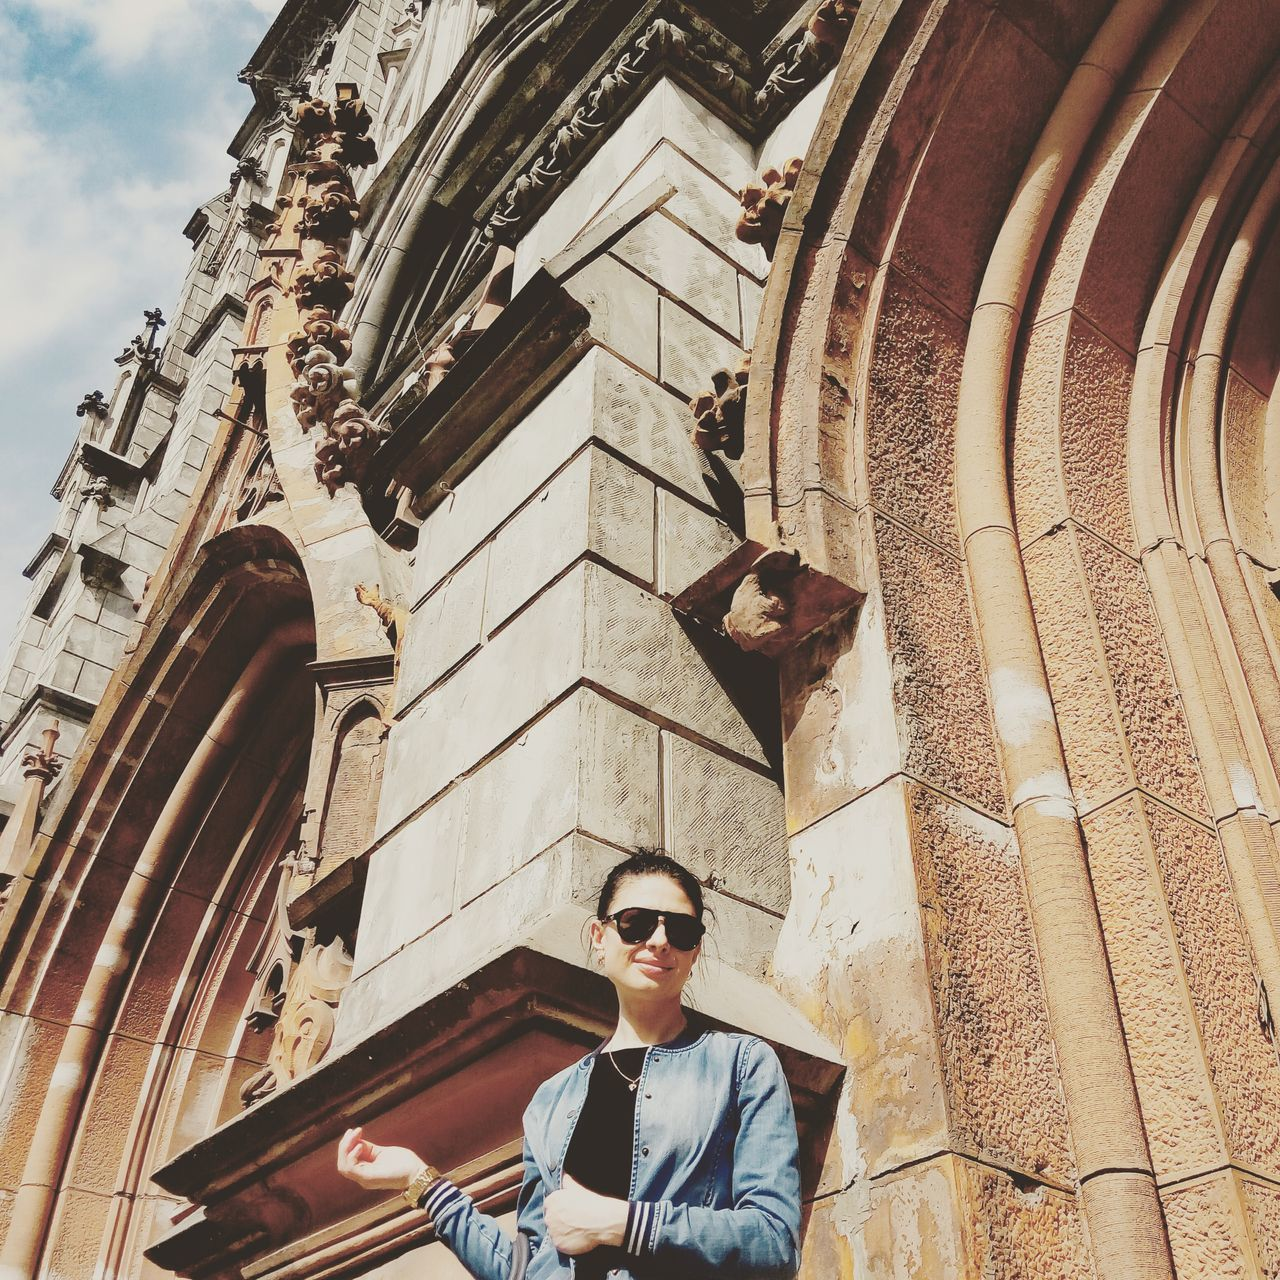 sunglasses, architecture, building exterior, built structure, real people, low angle view, young adult, one person, day, lifestyles, outdoors, portrait, sky